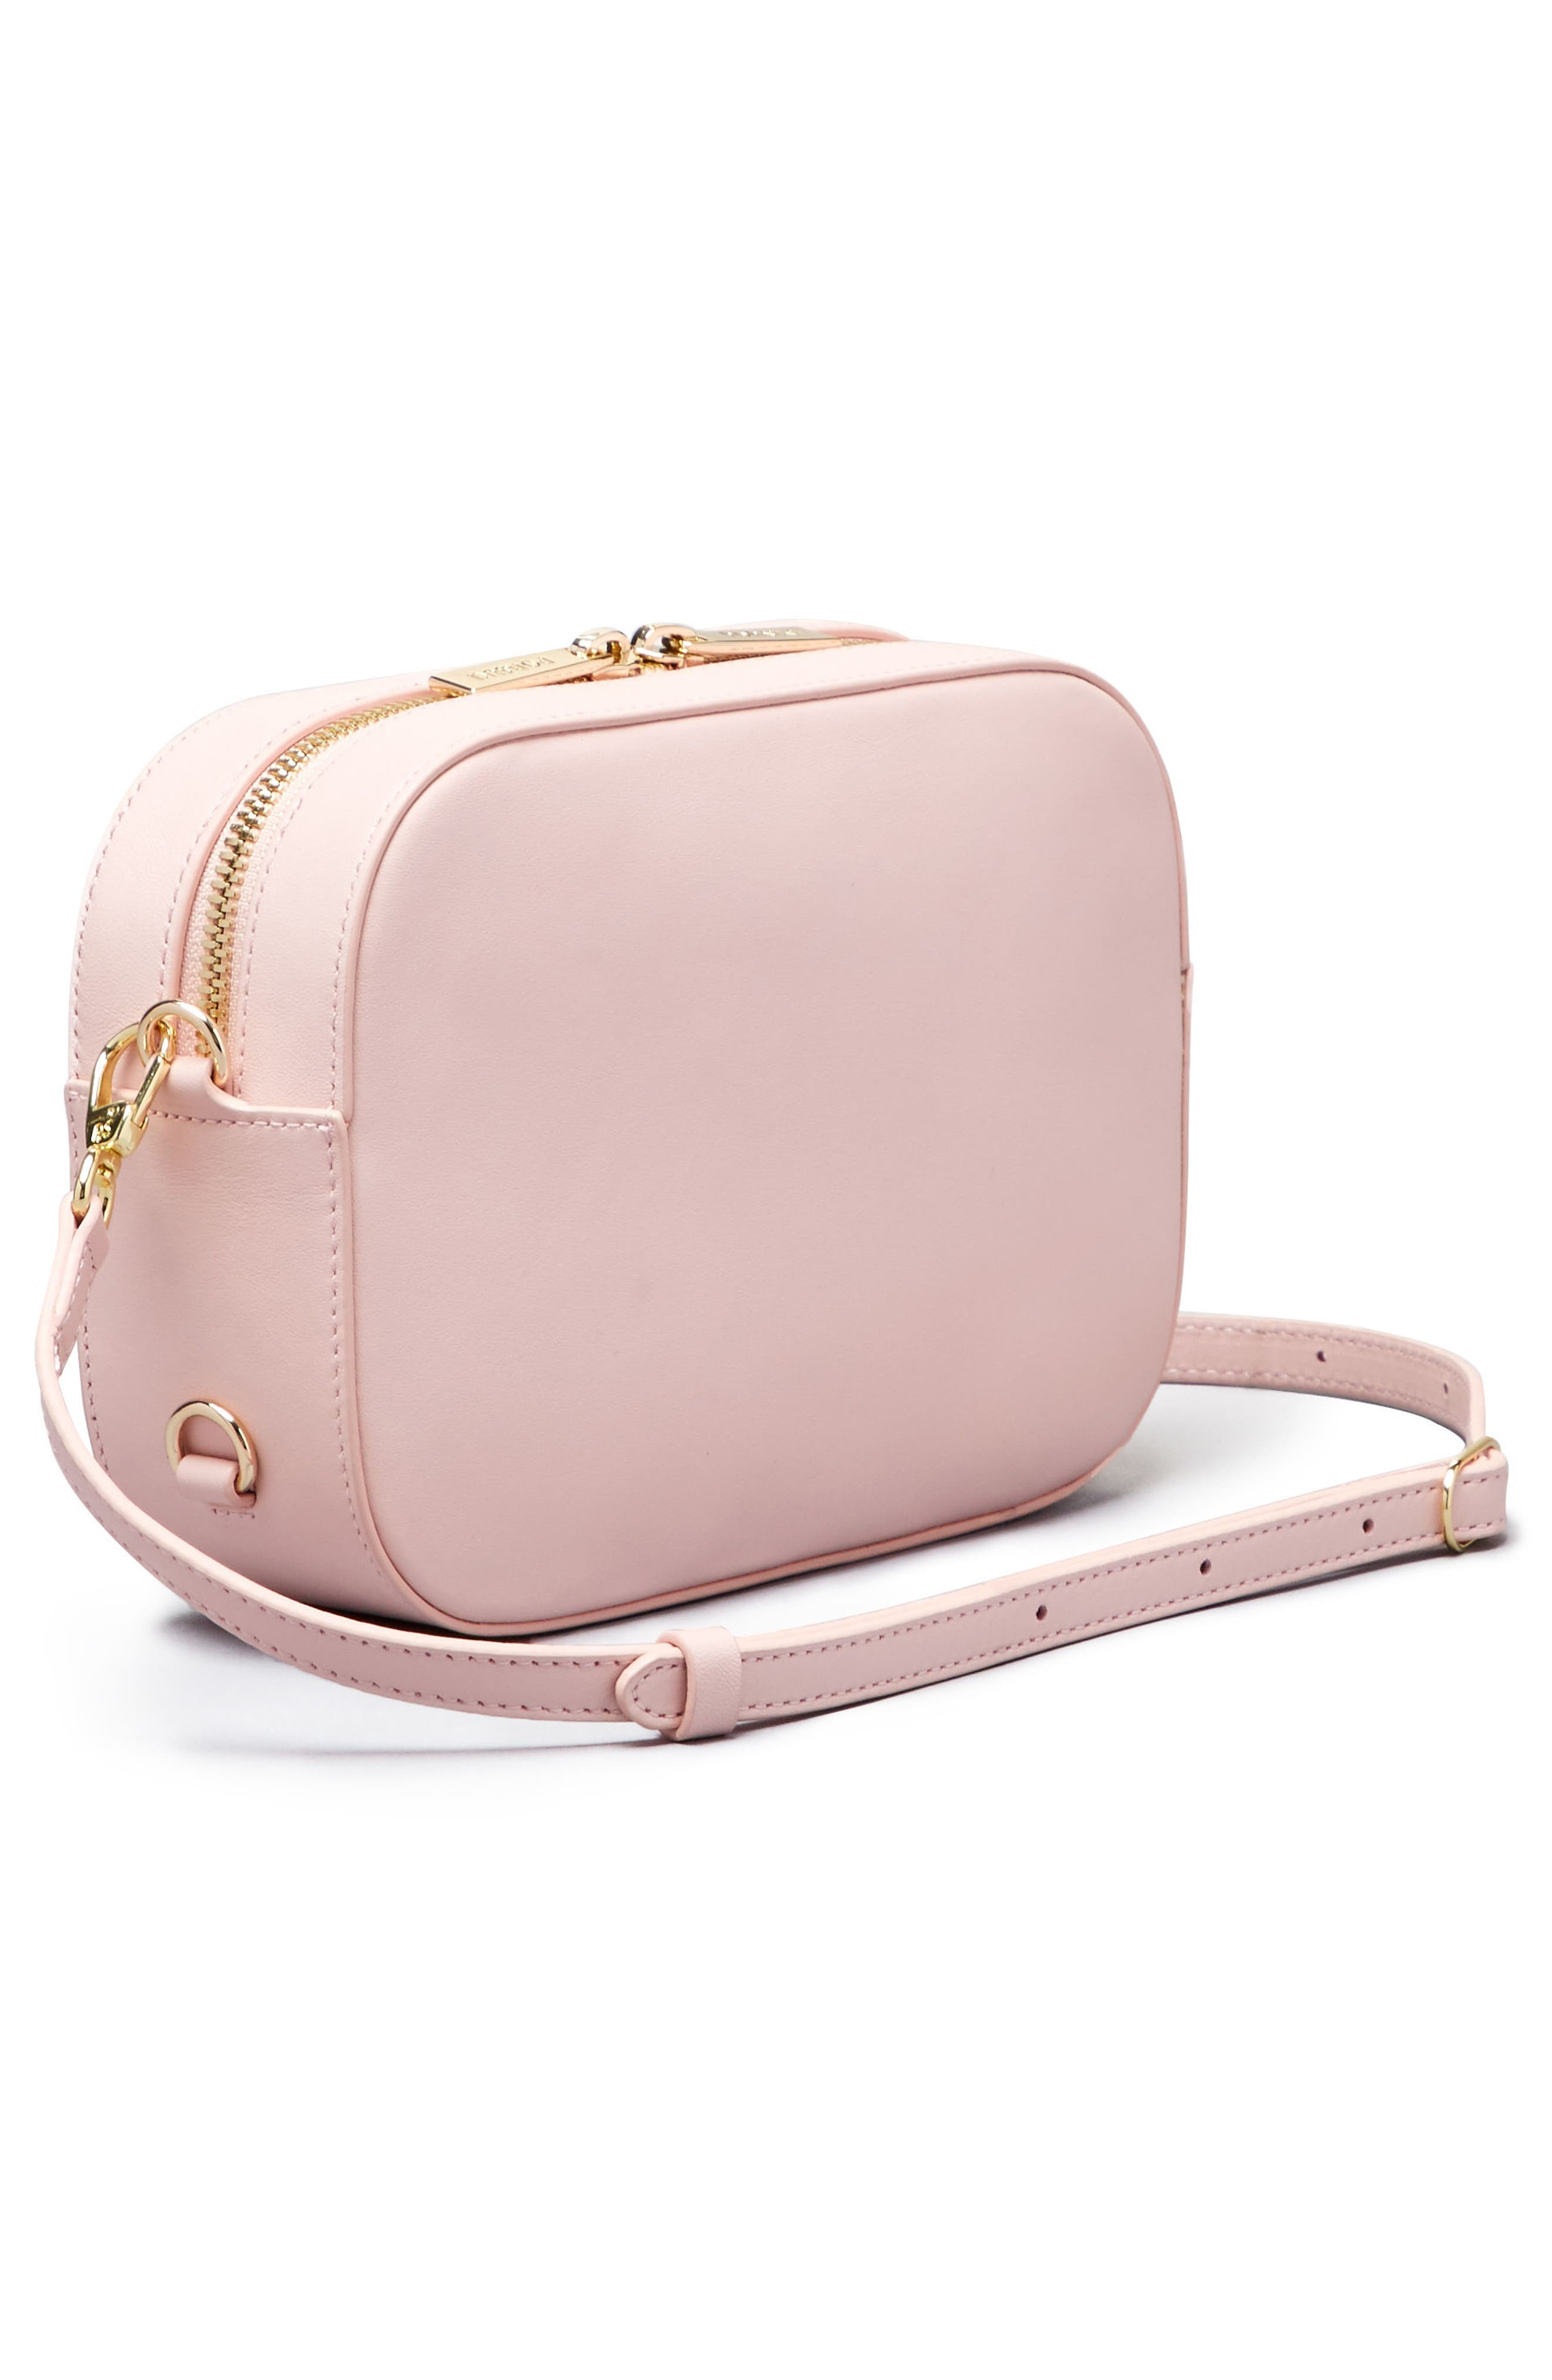 Bigger Leather Camera Bag,                             Alternate thumbnail 3, color,                             Cotton Candy